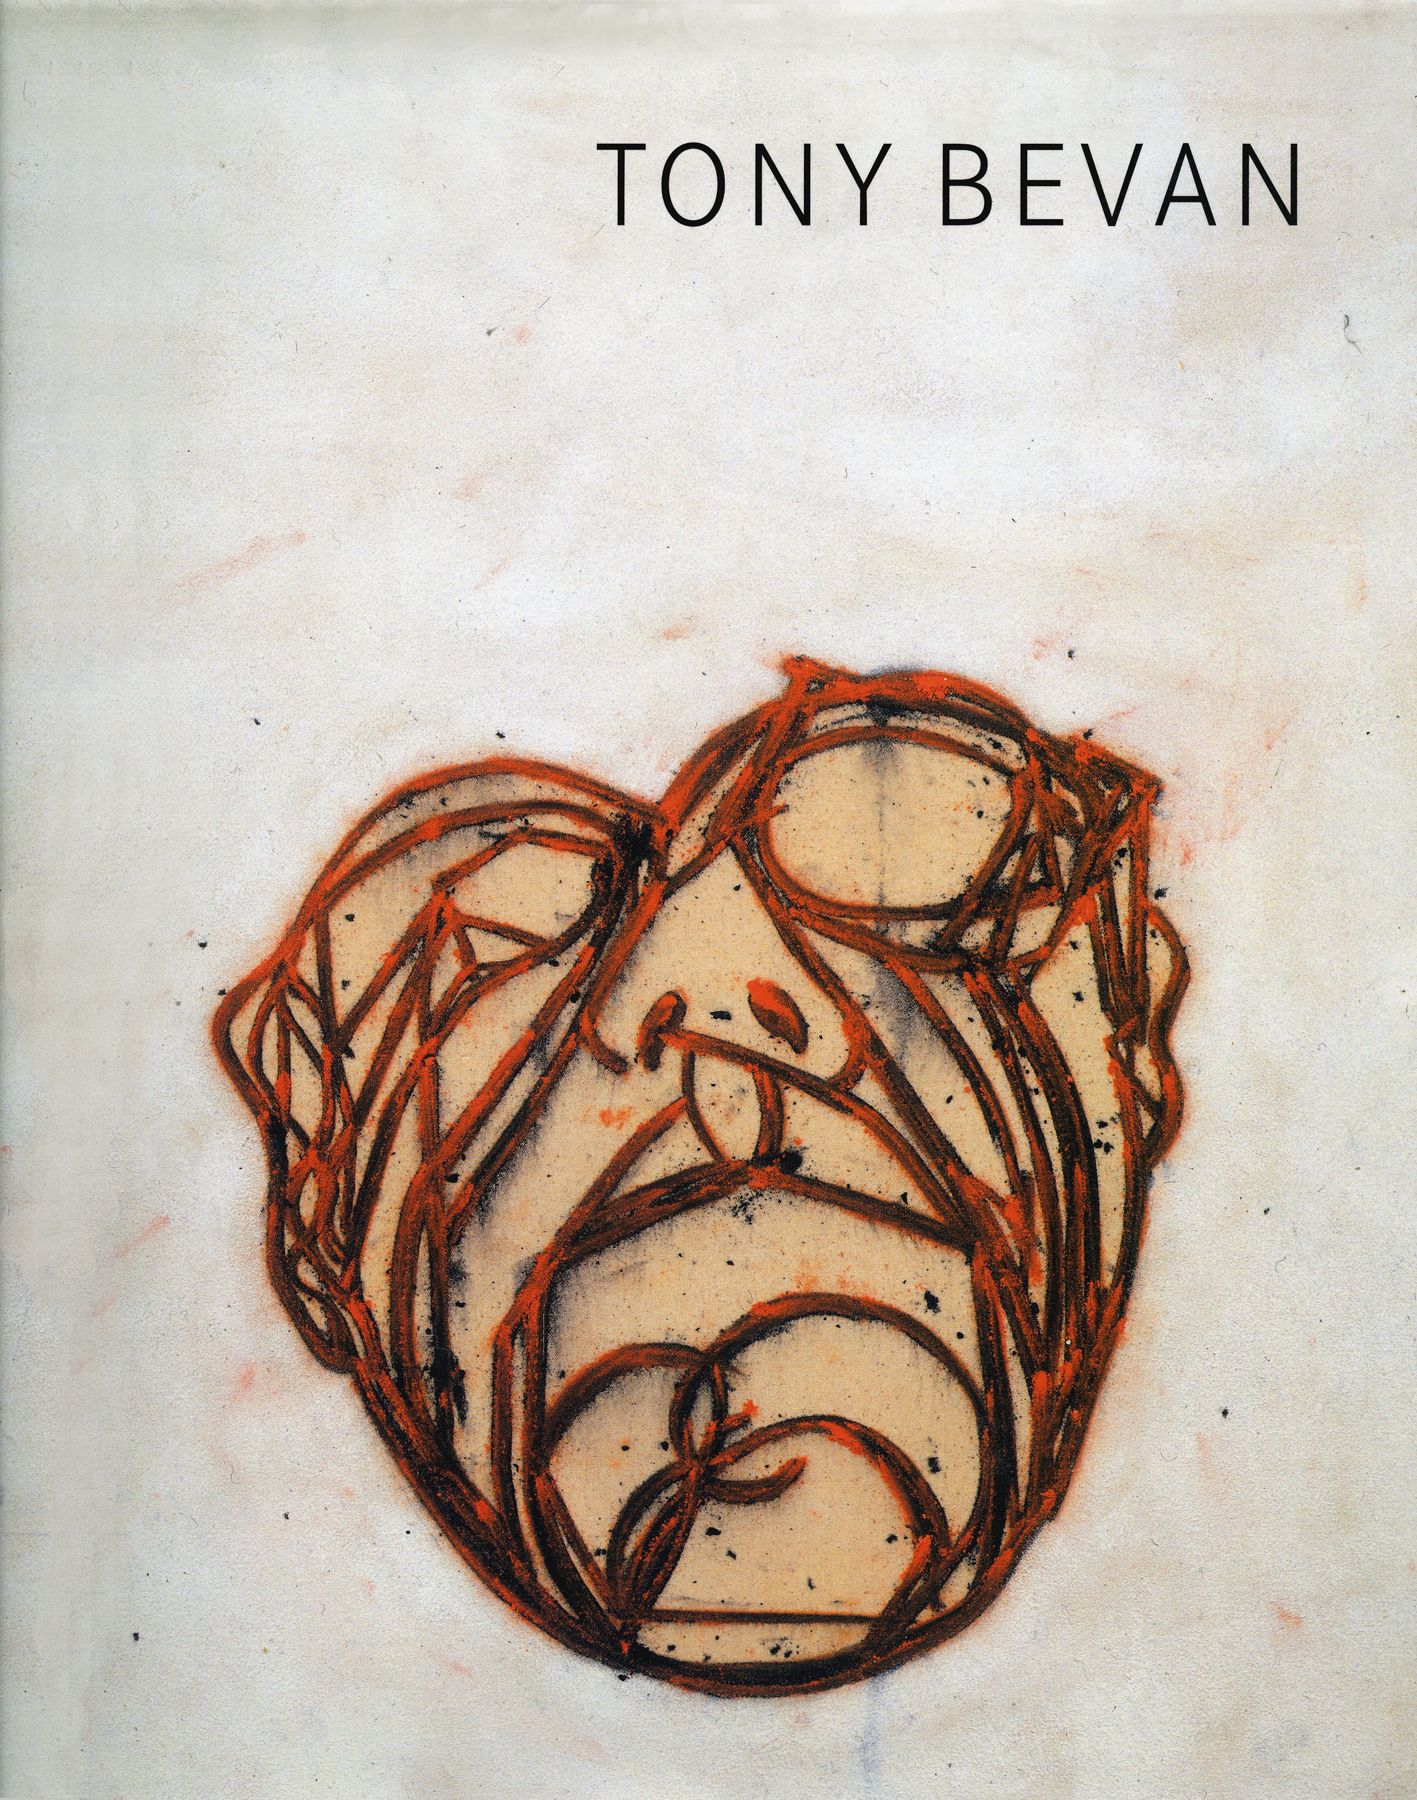 Tony Bevan, Lund Humphries Publishers Ltd, USA, 2006